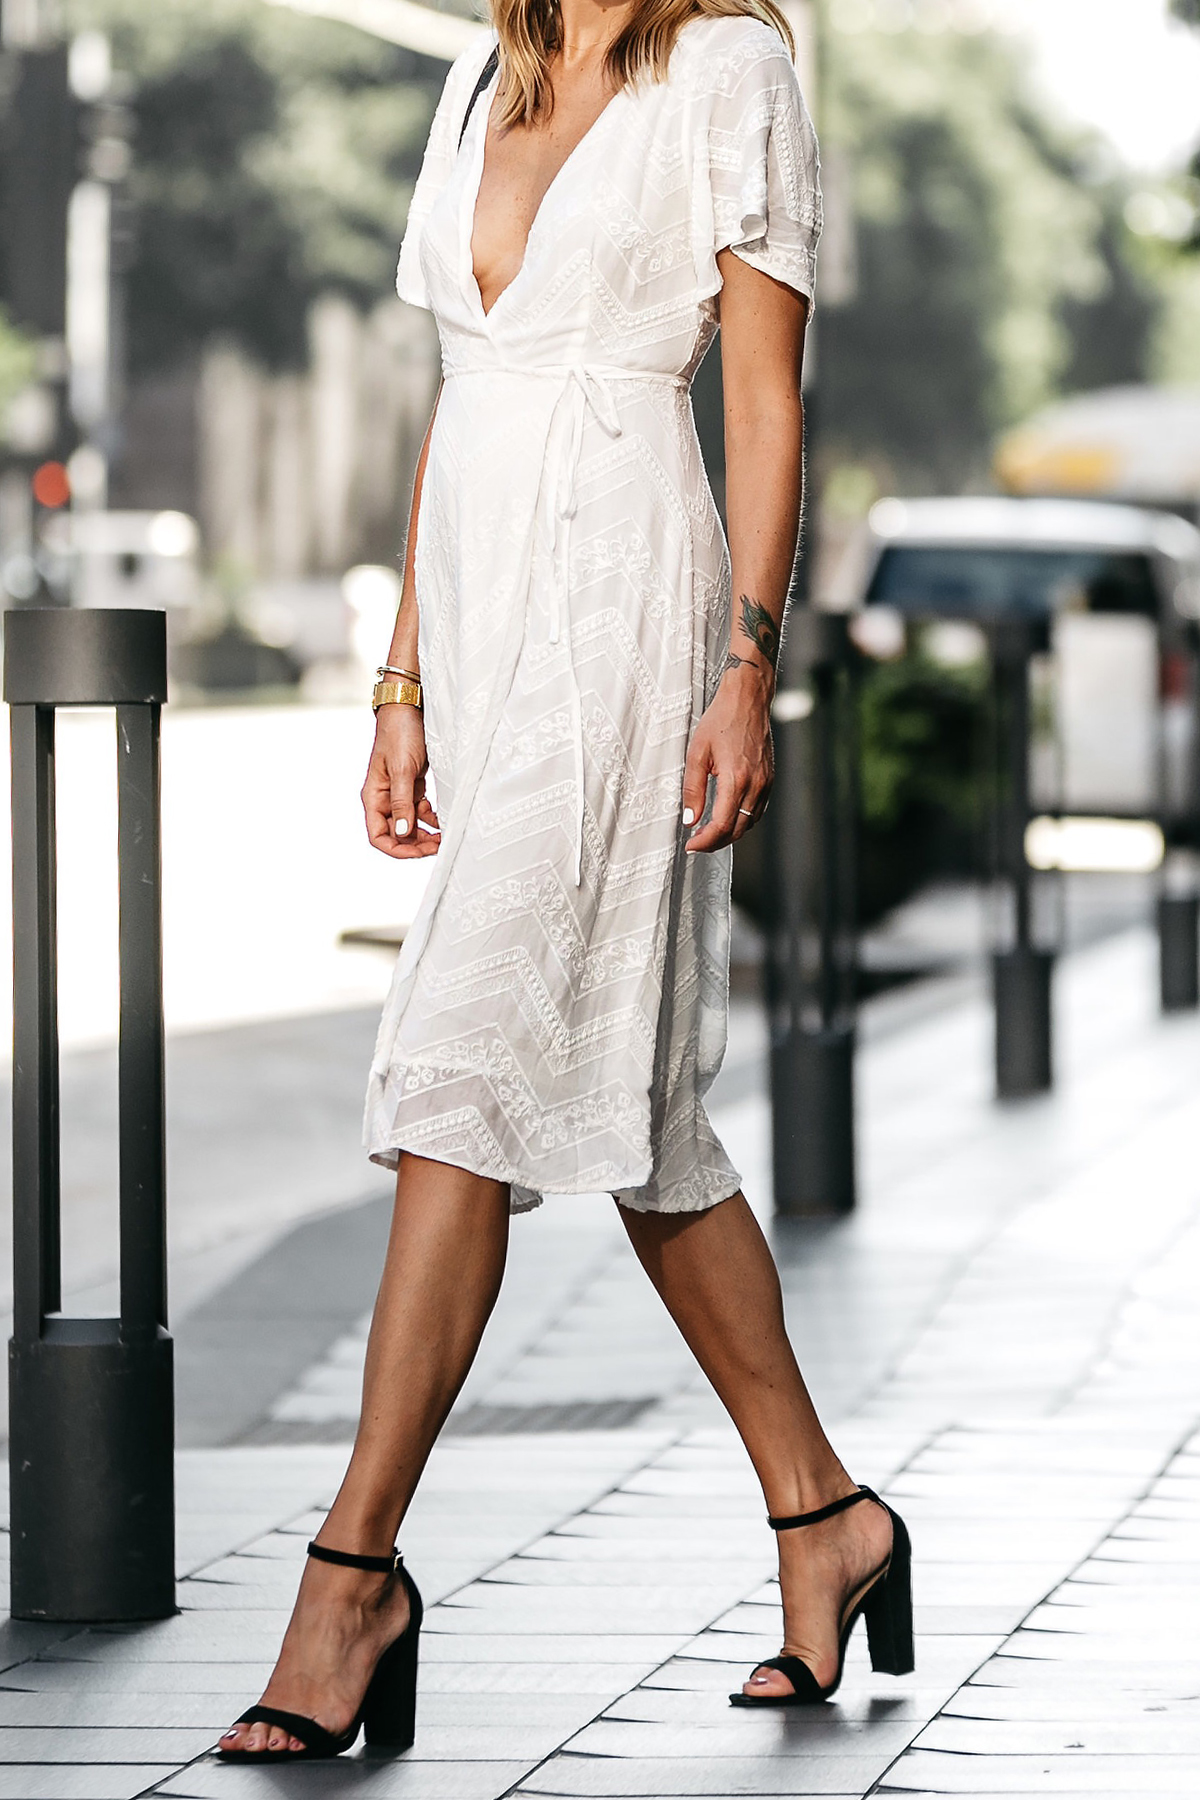 Blonde Woman Wearing Nordstrom Embroidered White Wrap Dress Black Ankle Strap Heeled Sandals Fashion Jackson Dallas Blogger Fashion Blogger